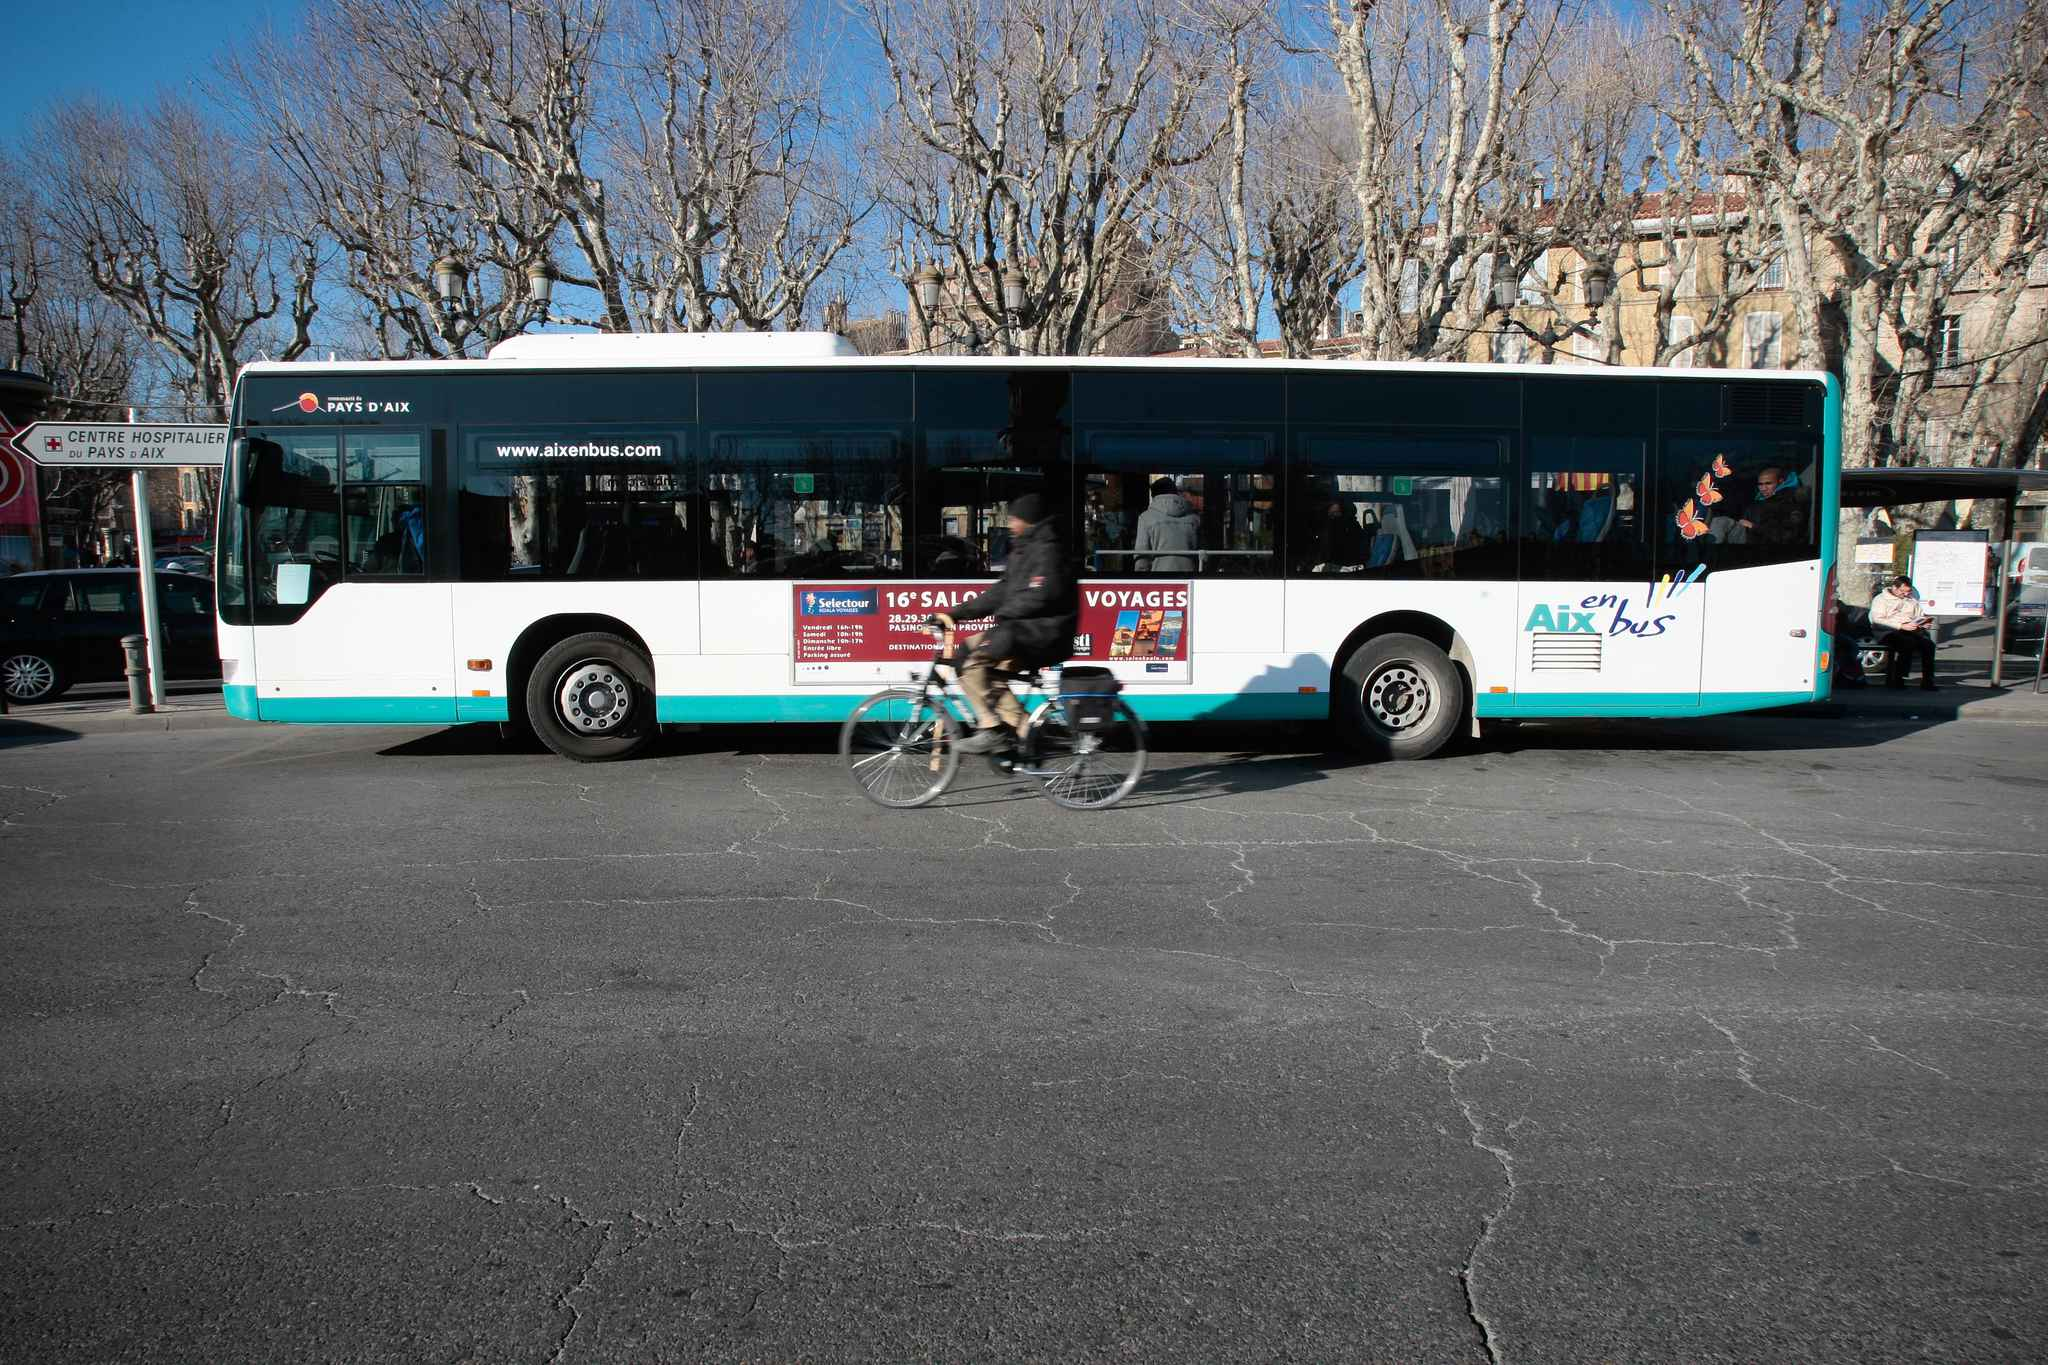 Aix Salon Bus Vos Déplacements En Bus Azalee I Association Zone D